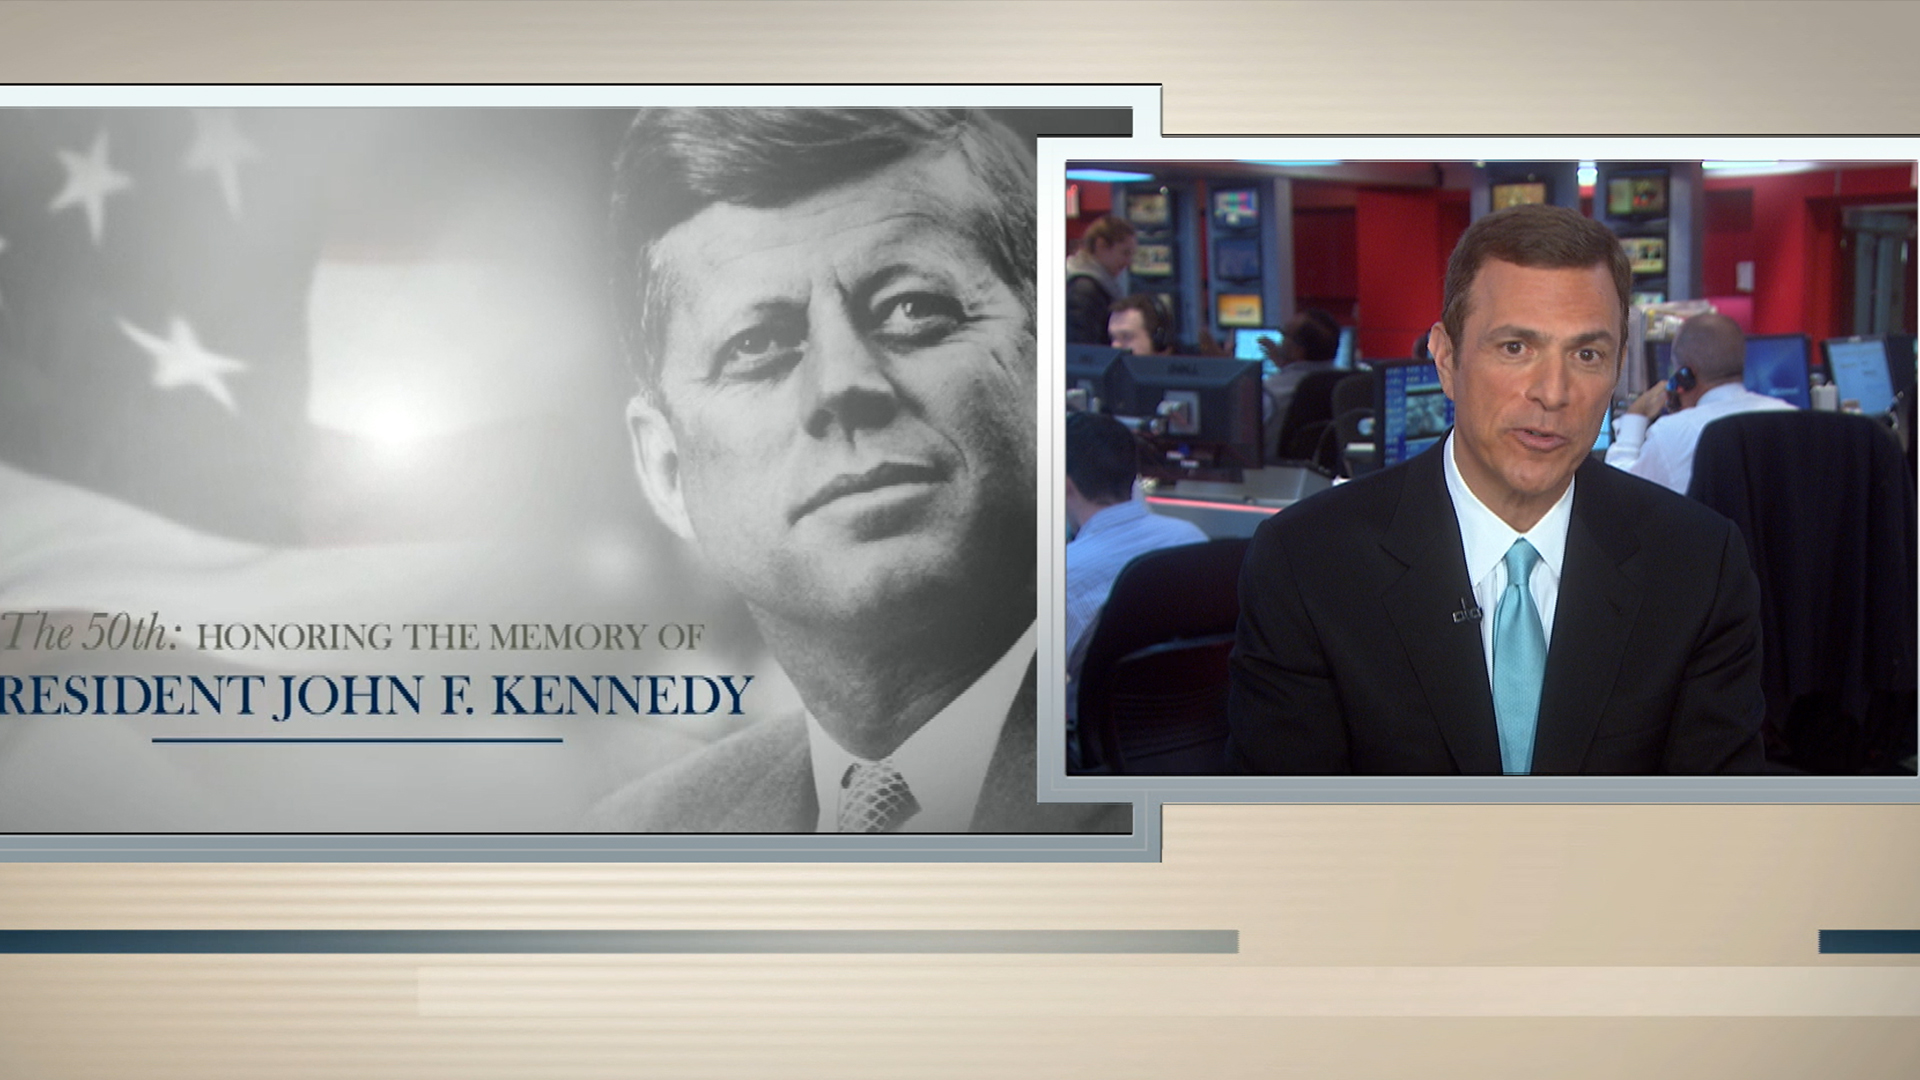 Kennedy's impact, past and present